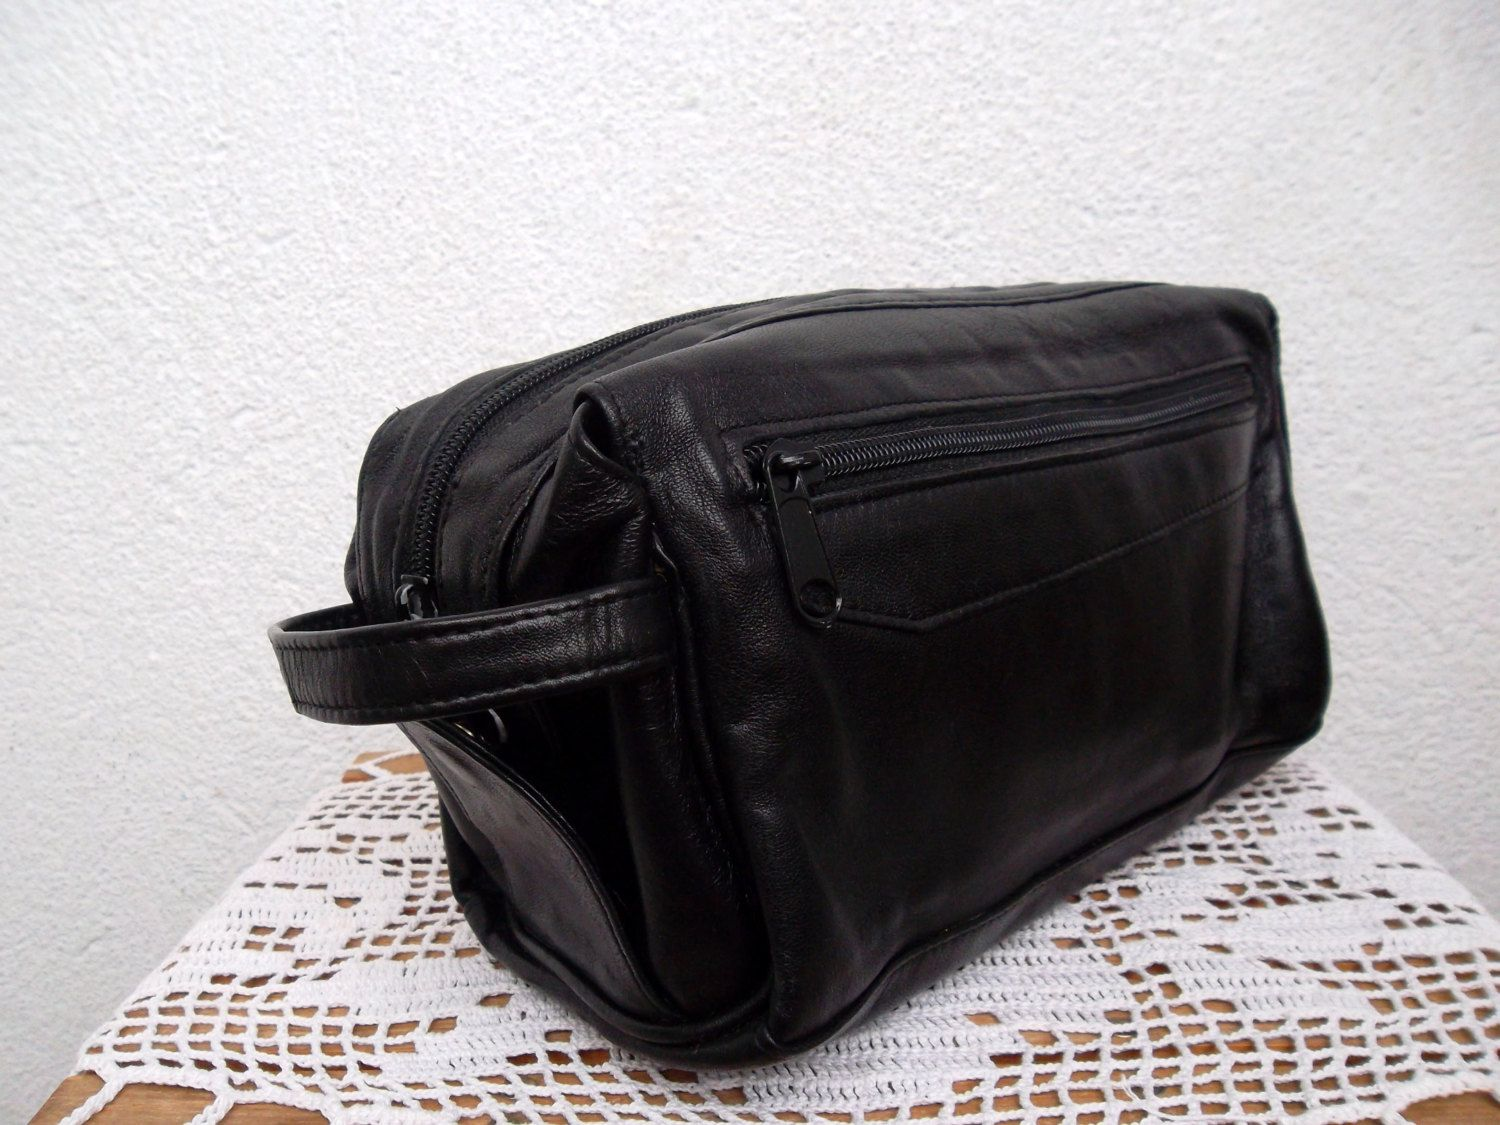 Mens Toiletry Bag  Genuine Leather Dopp Kit  Unisex Cosmetic Pouch  Travel  Organizer. Mens Toiletry Bag  Genuine Leather Dopp Kit  Unisex Cosmetic Pouch